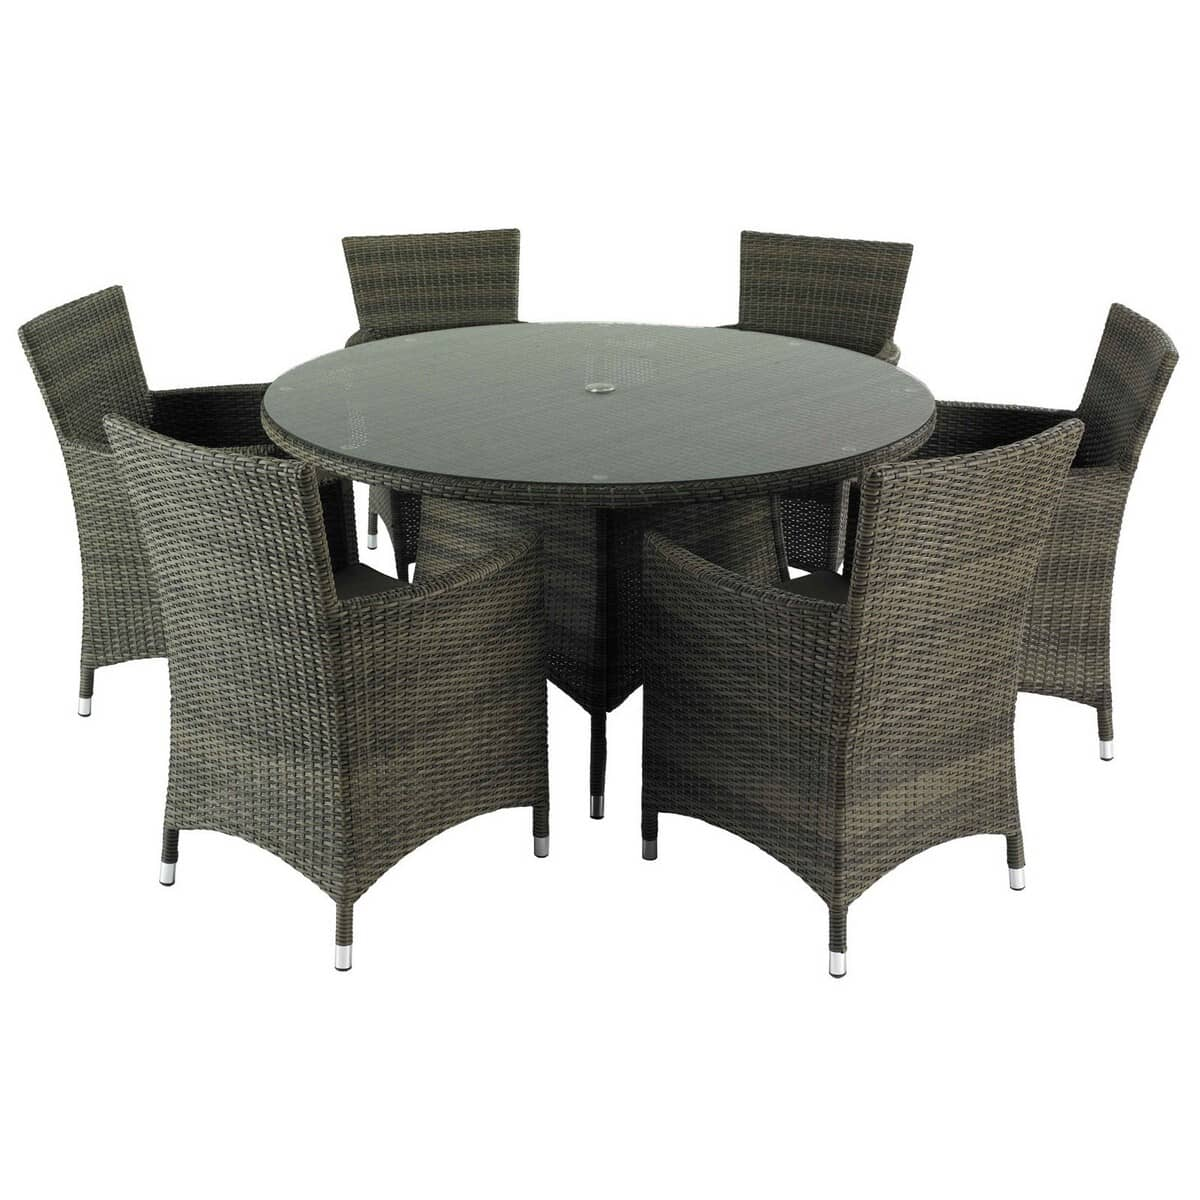 hartman bentley 6 seat dining set hbenset03 garden. Black Bedroom Furniture Sets. Home Design Ideas